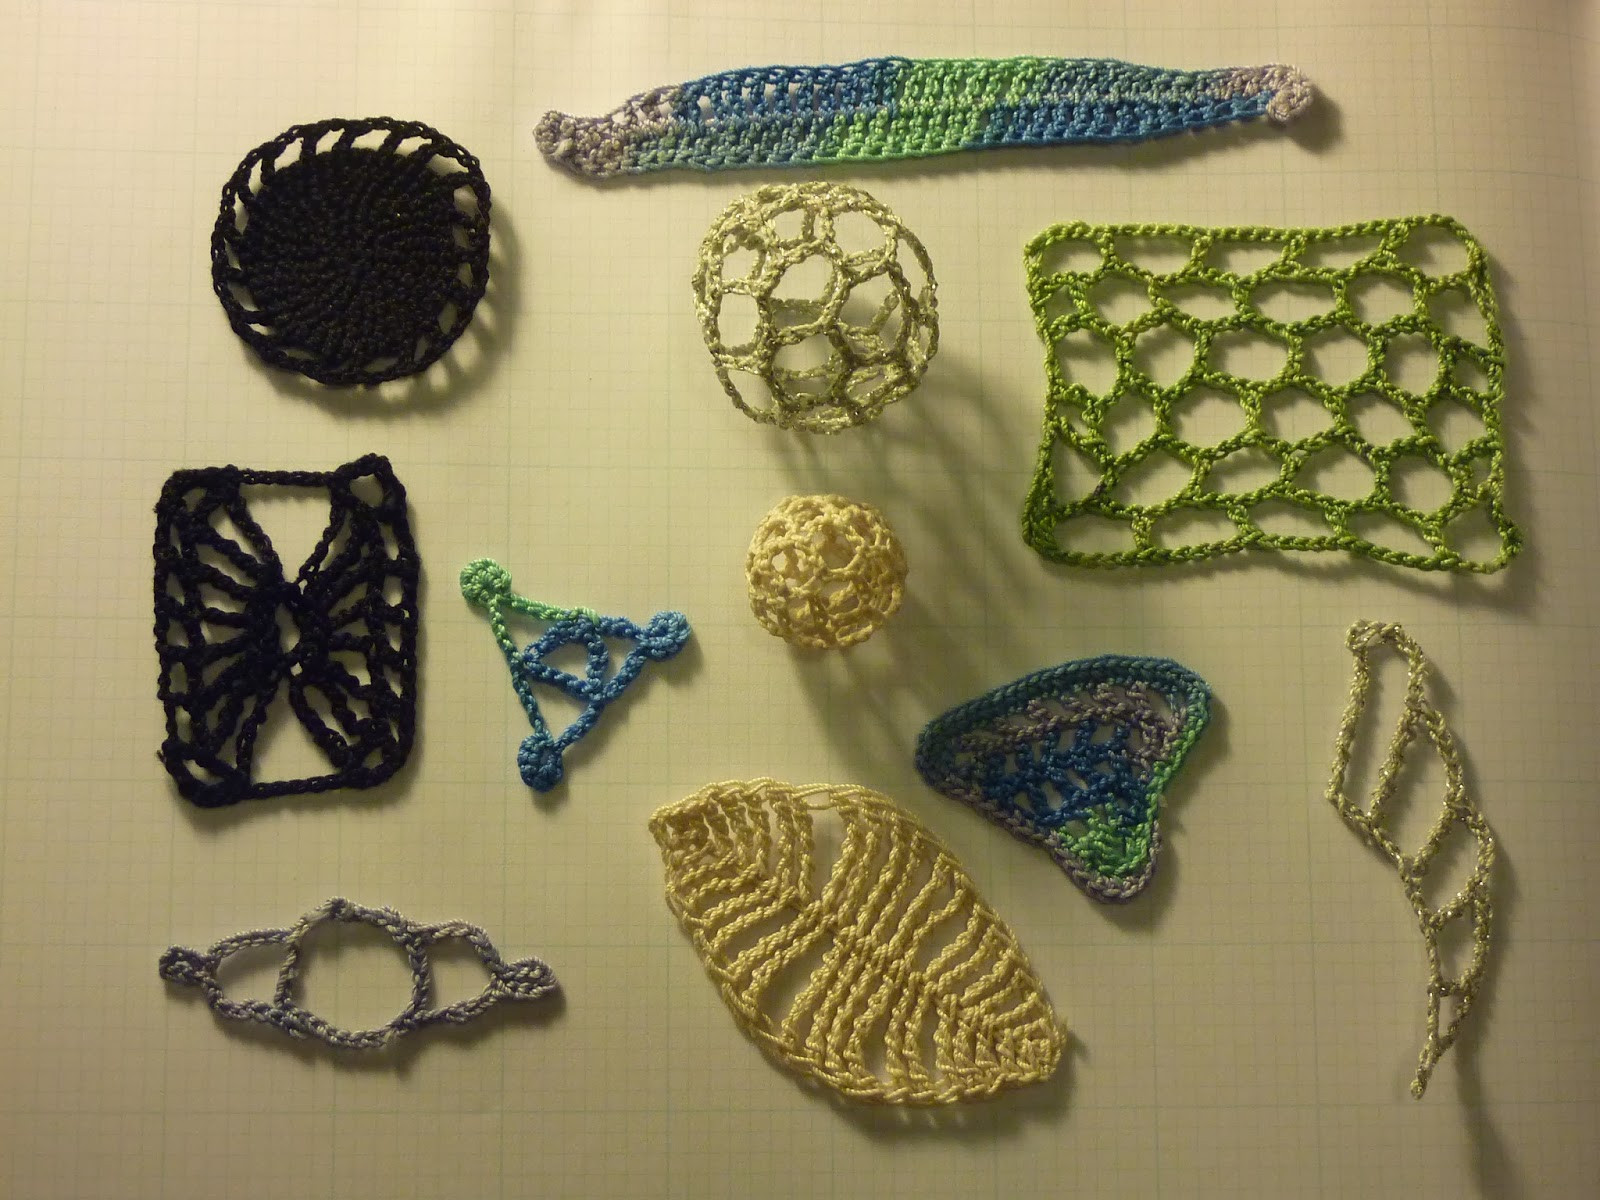 Lacework Crochet Elegant Wunderkammer Lacework Diatoms 11 Free Crochet Patterns Of Brilliant 50 Pics Lacework Crochet